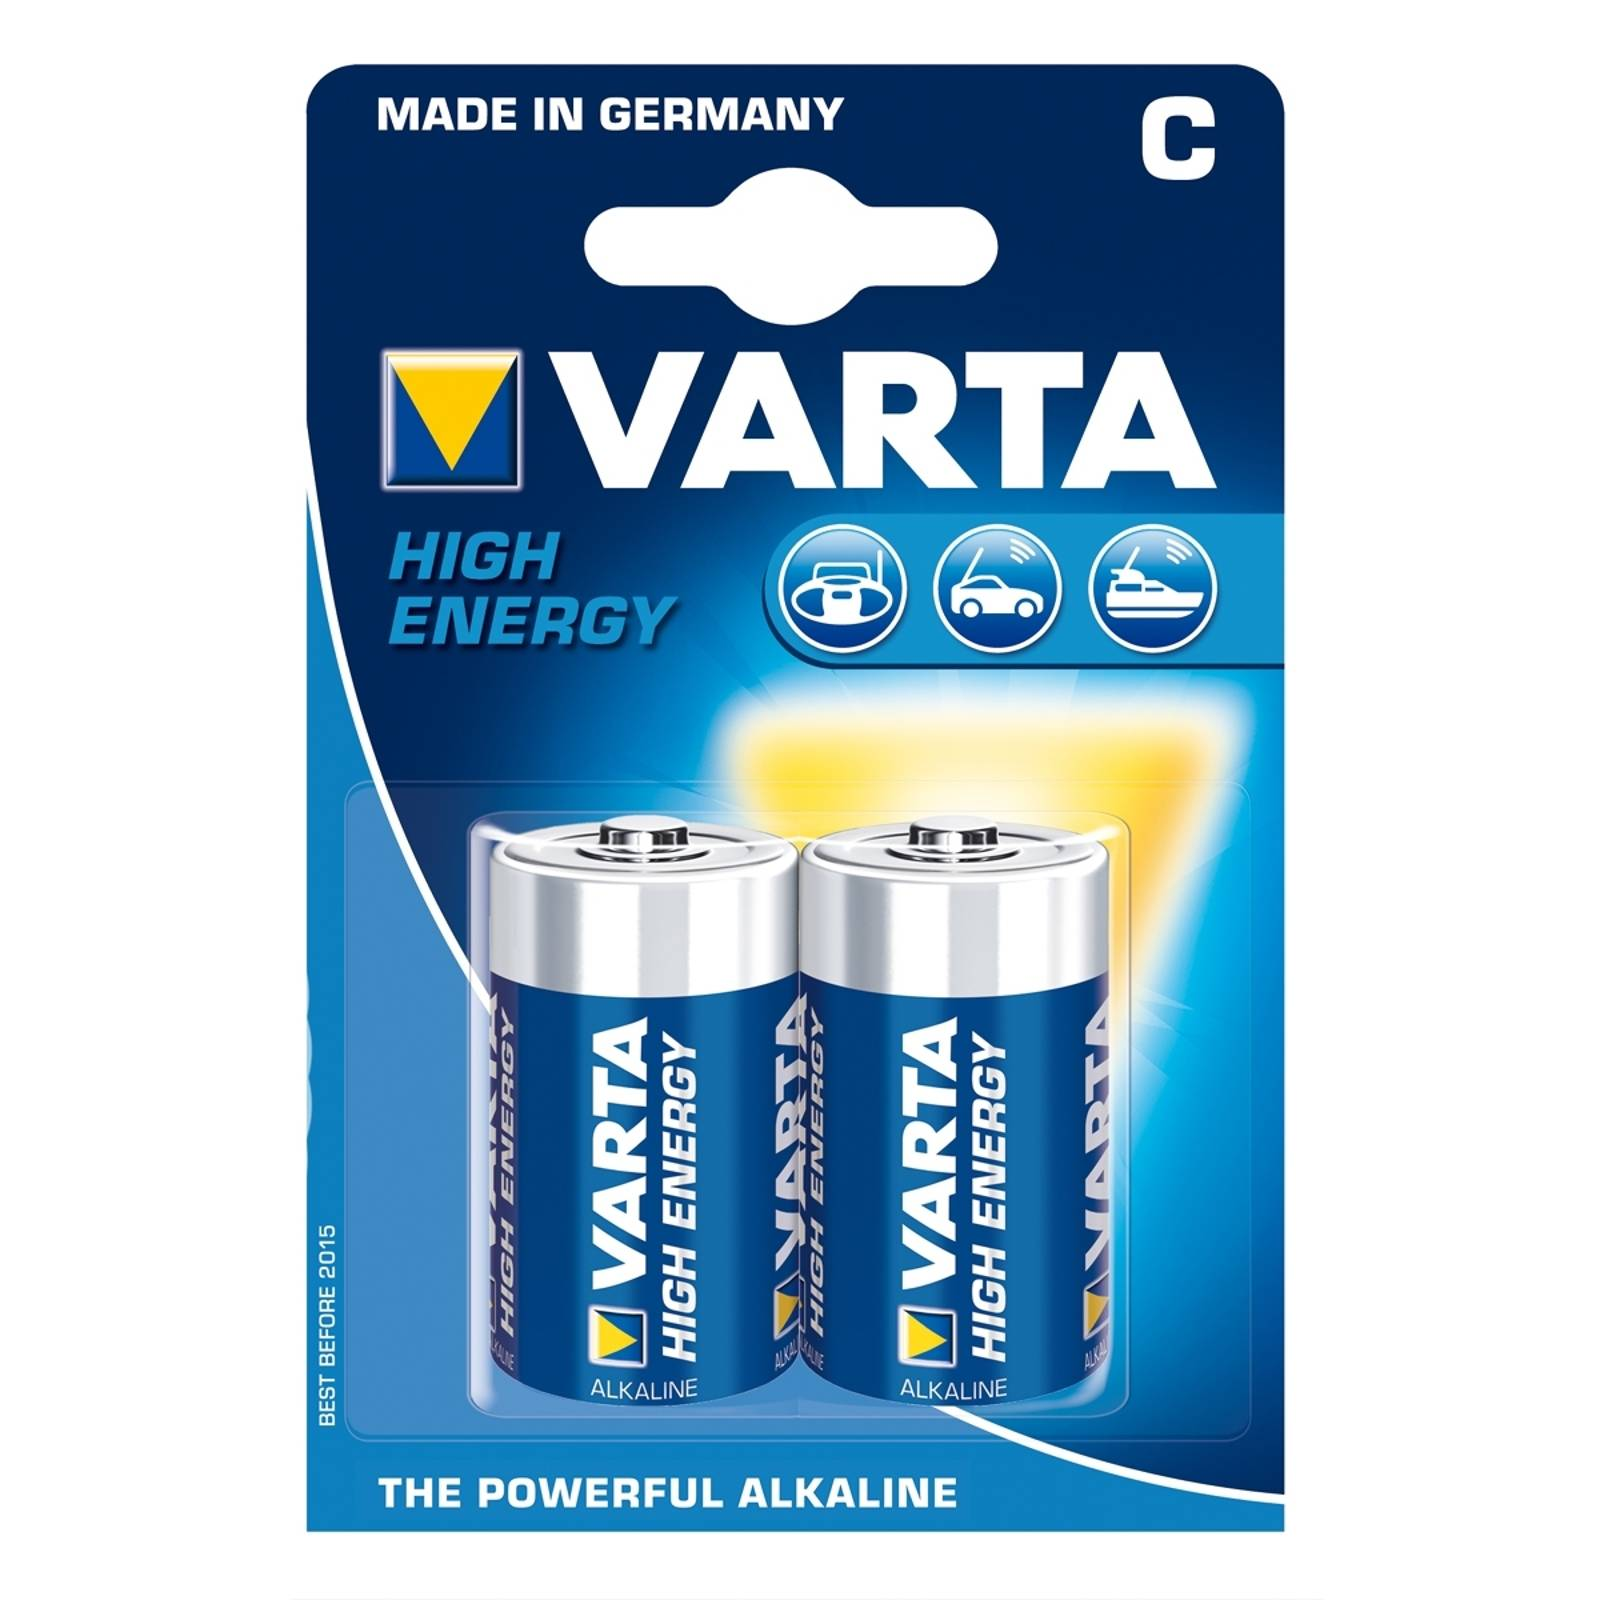 VARTA High Energy Baby 4914 - C batteries from Varta